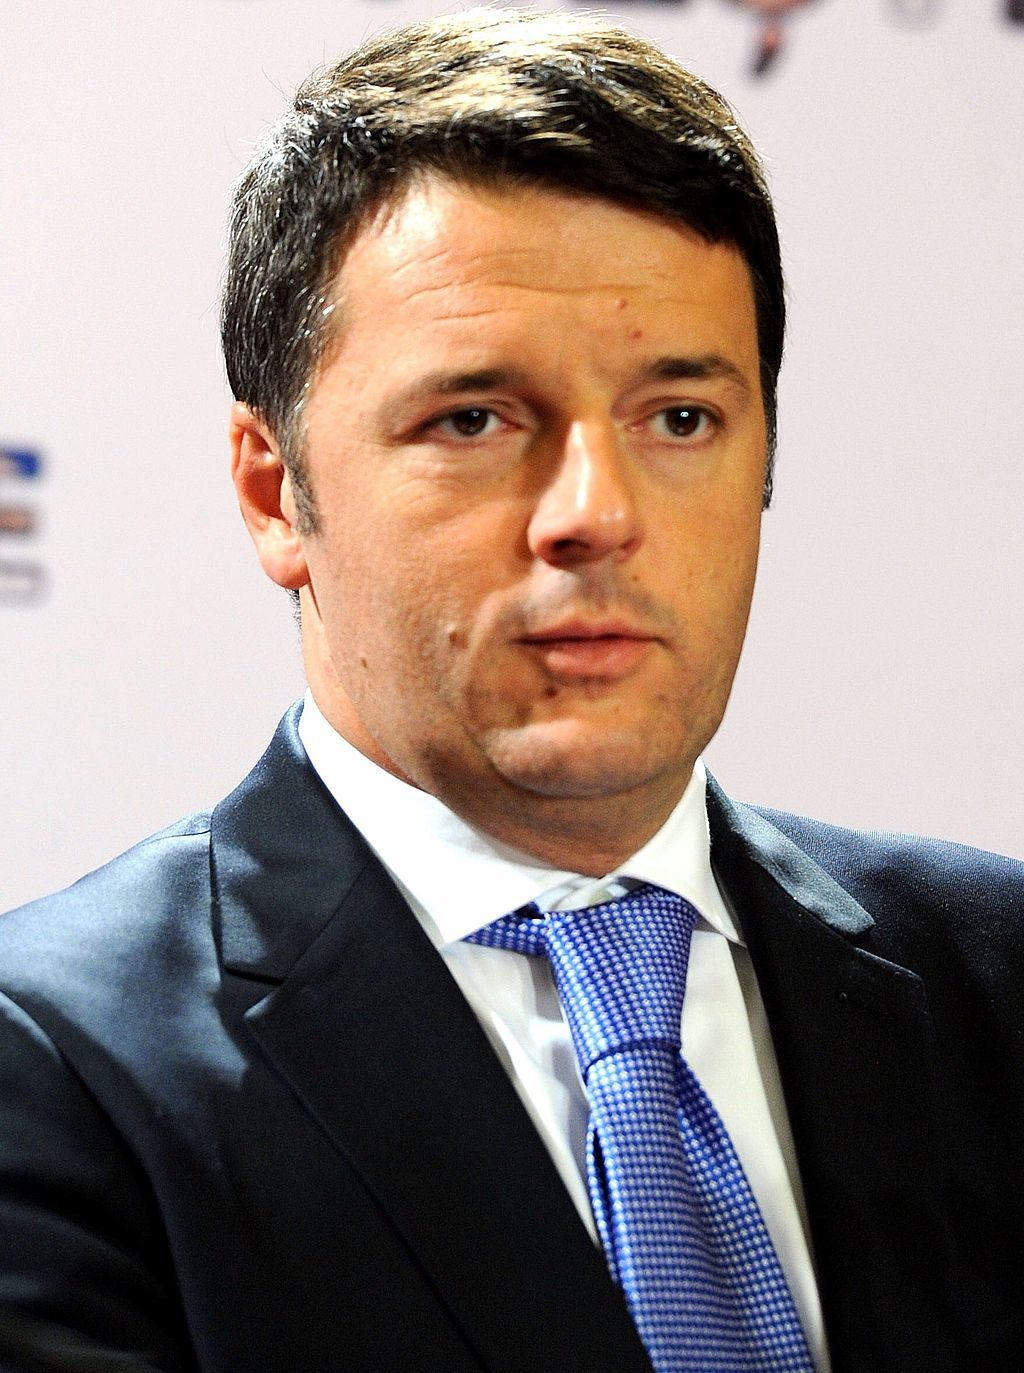 Matteo Renzi Genealogy